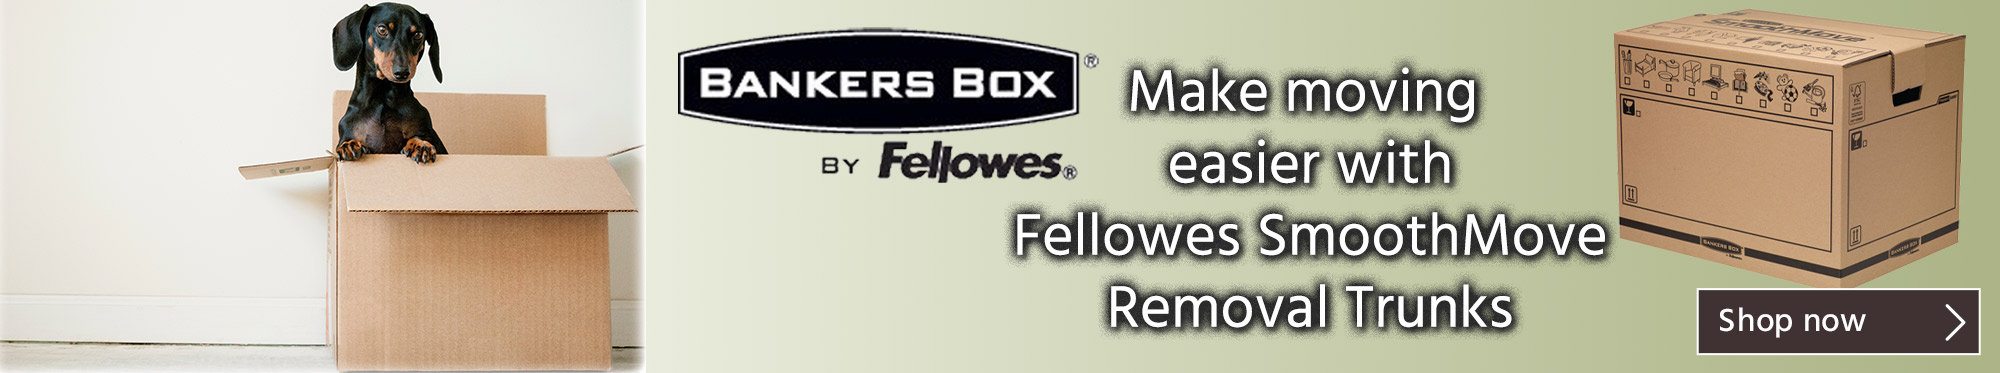 Fellowes SmoothMove Removal Trunks